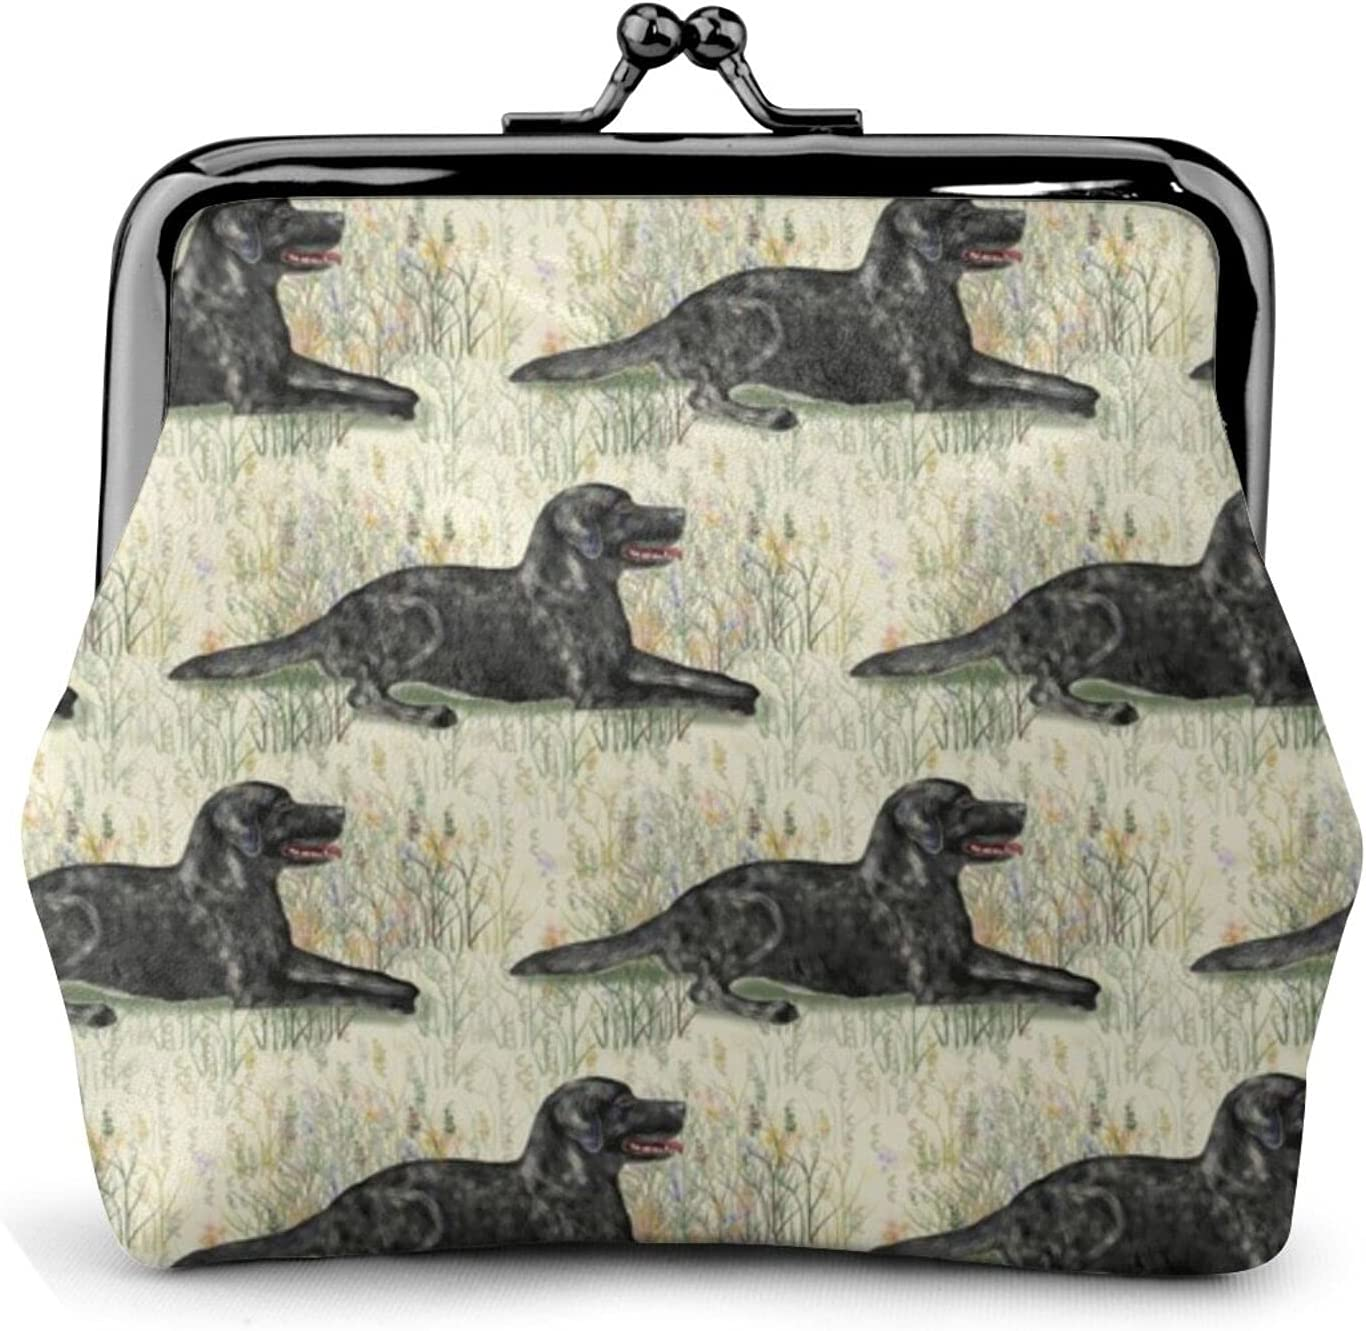 Black Lab Lying 593 Coin Purse Retro Money Pouch with Kiss-lock Buckle Small Wallet for Women and Girls